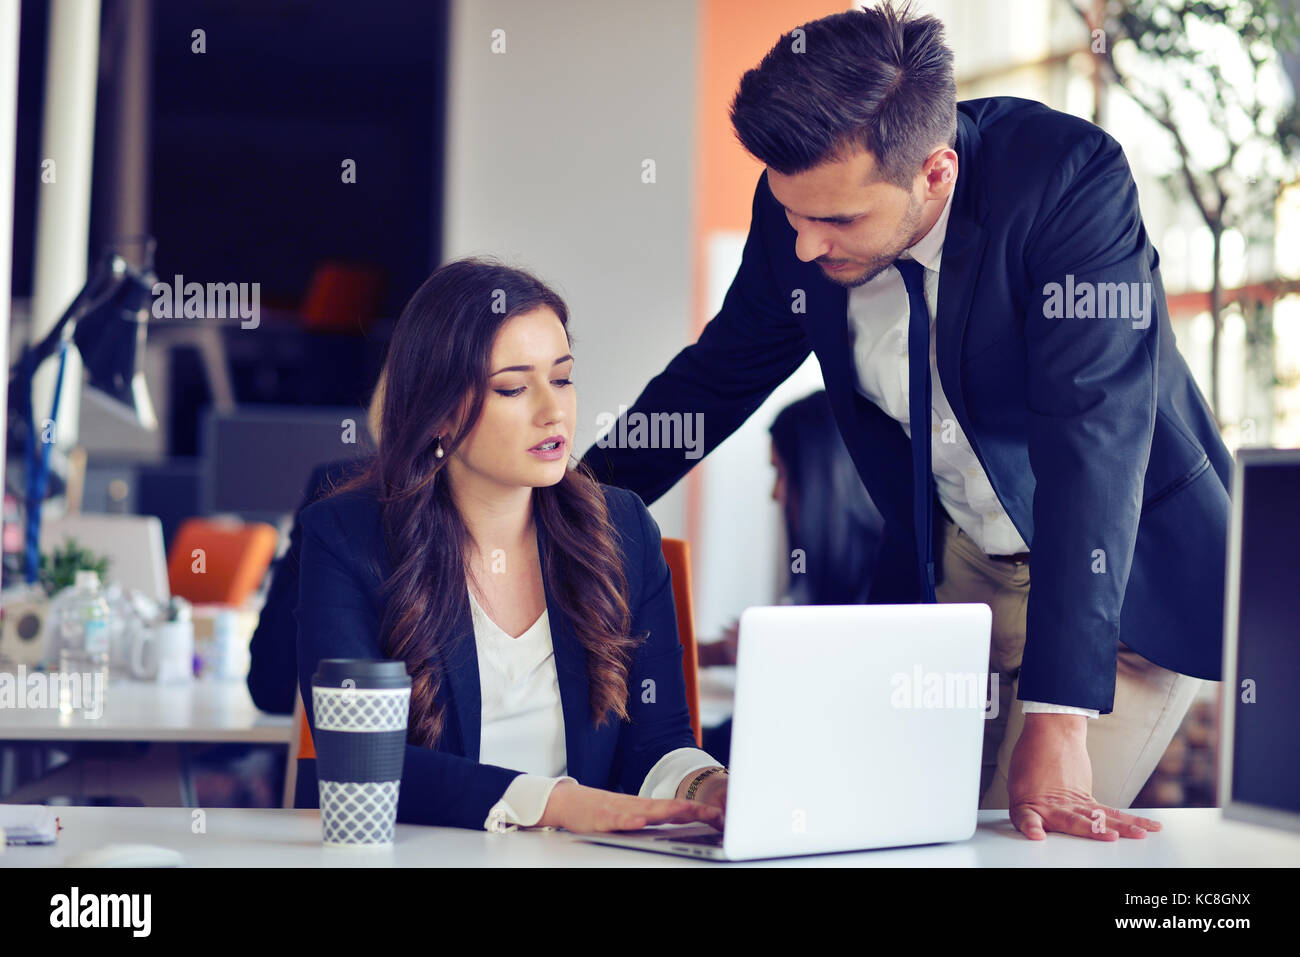 startup business concept with young multiethnic couple in modern office working on laptop - Stock Image